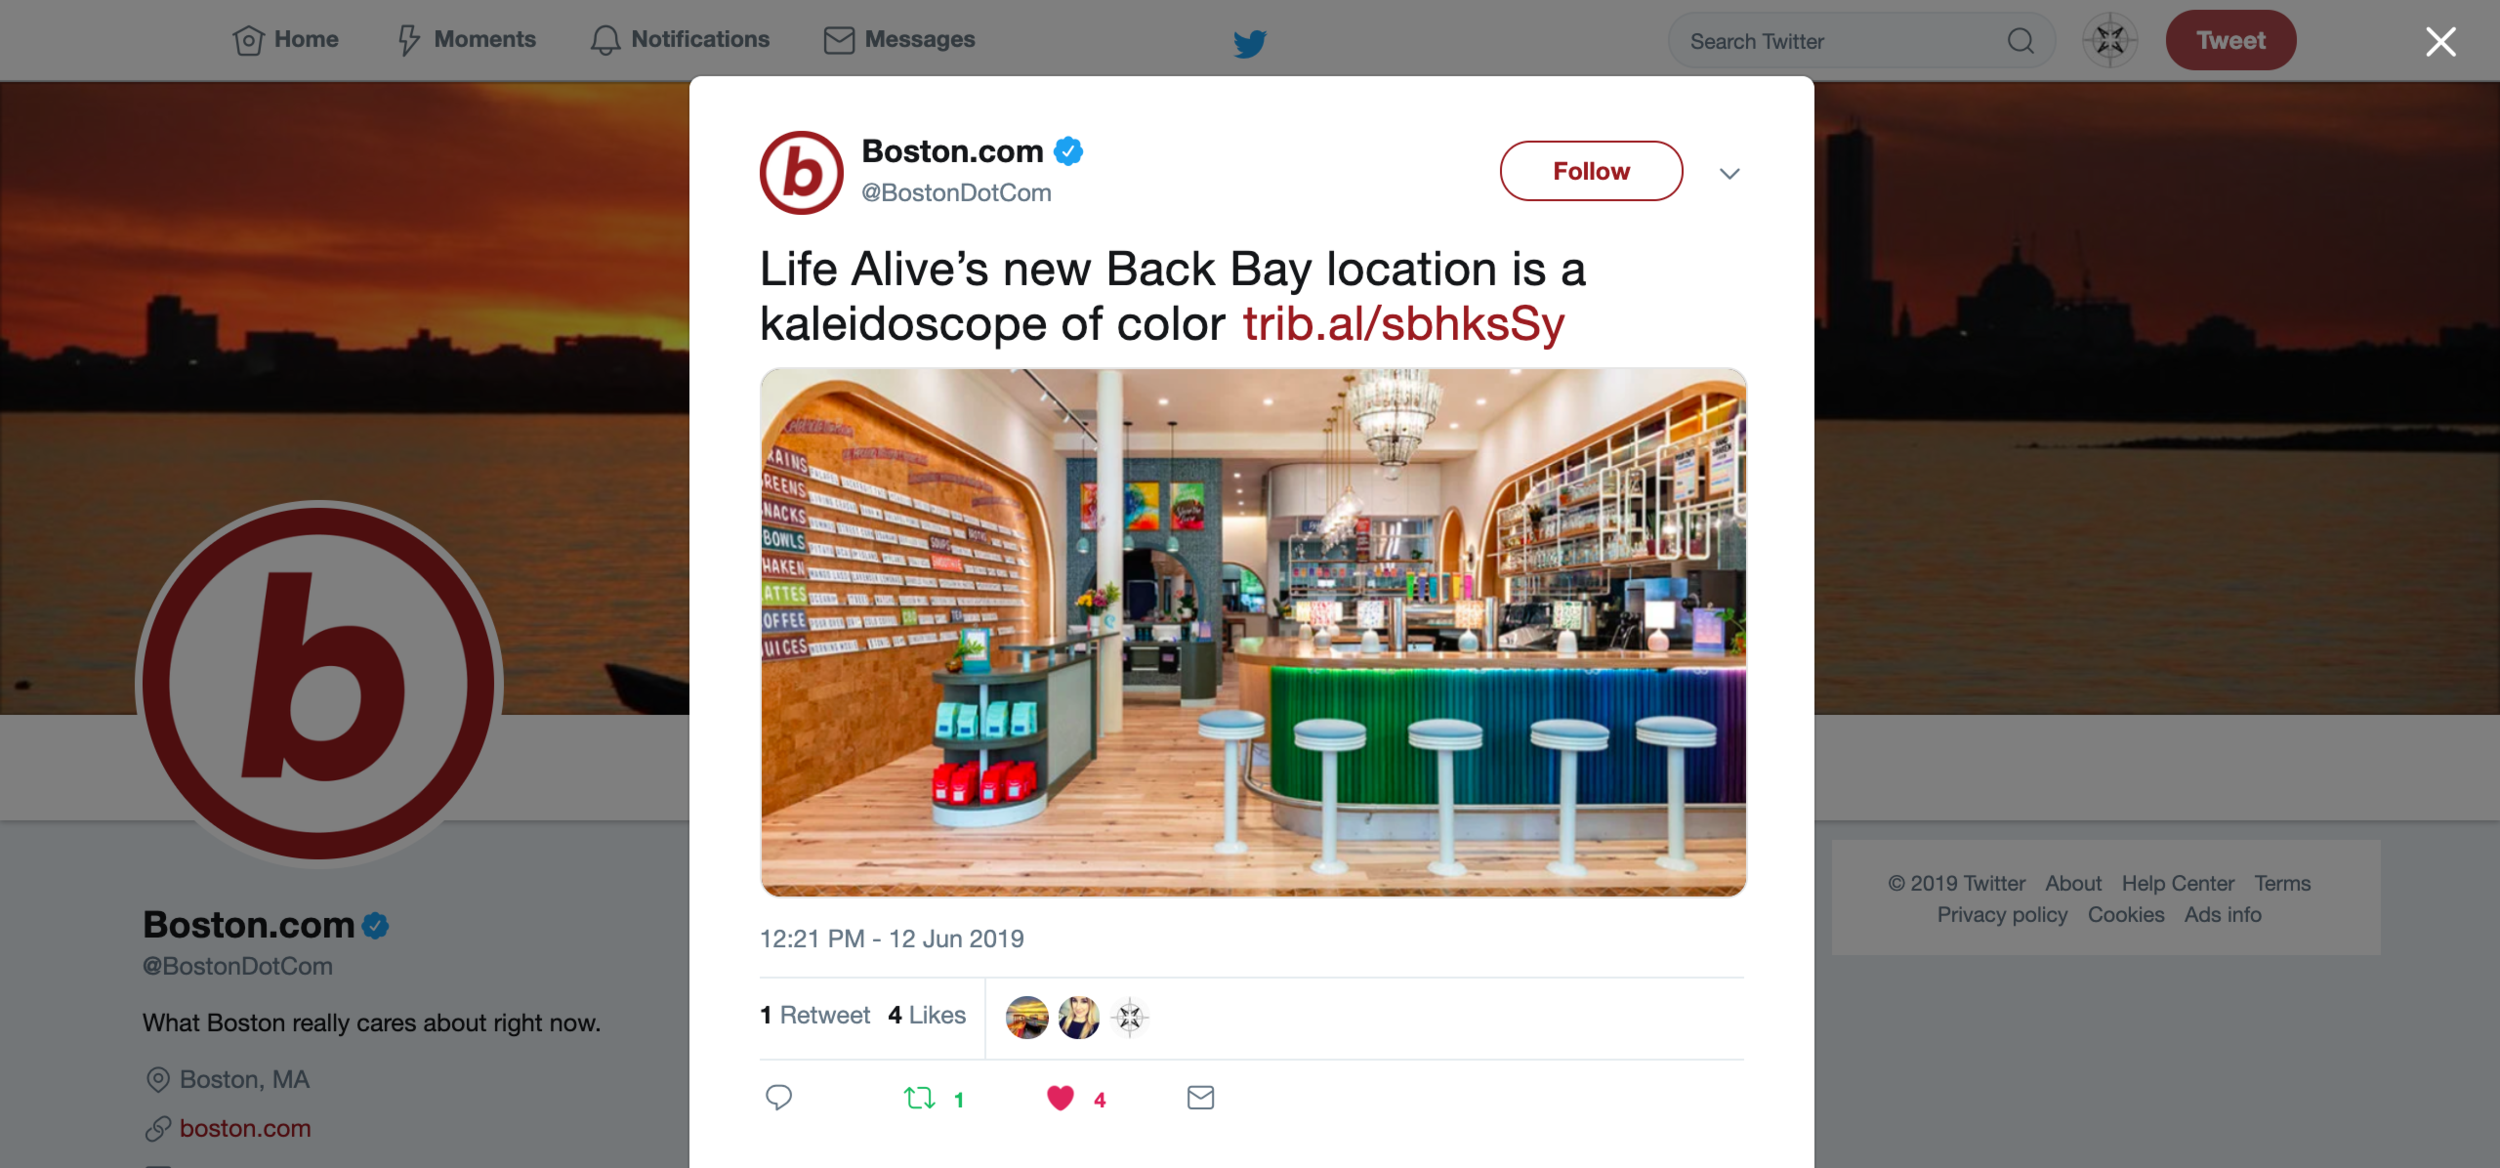 2019.06.12_Boston.com, Twitter_Life Alive Back Bay.png